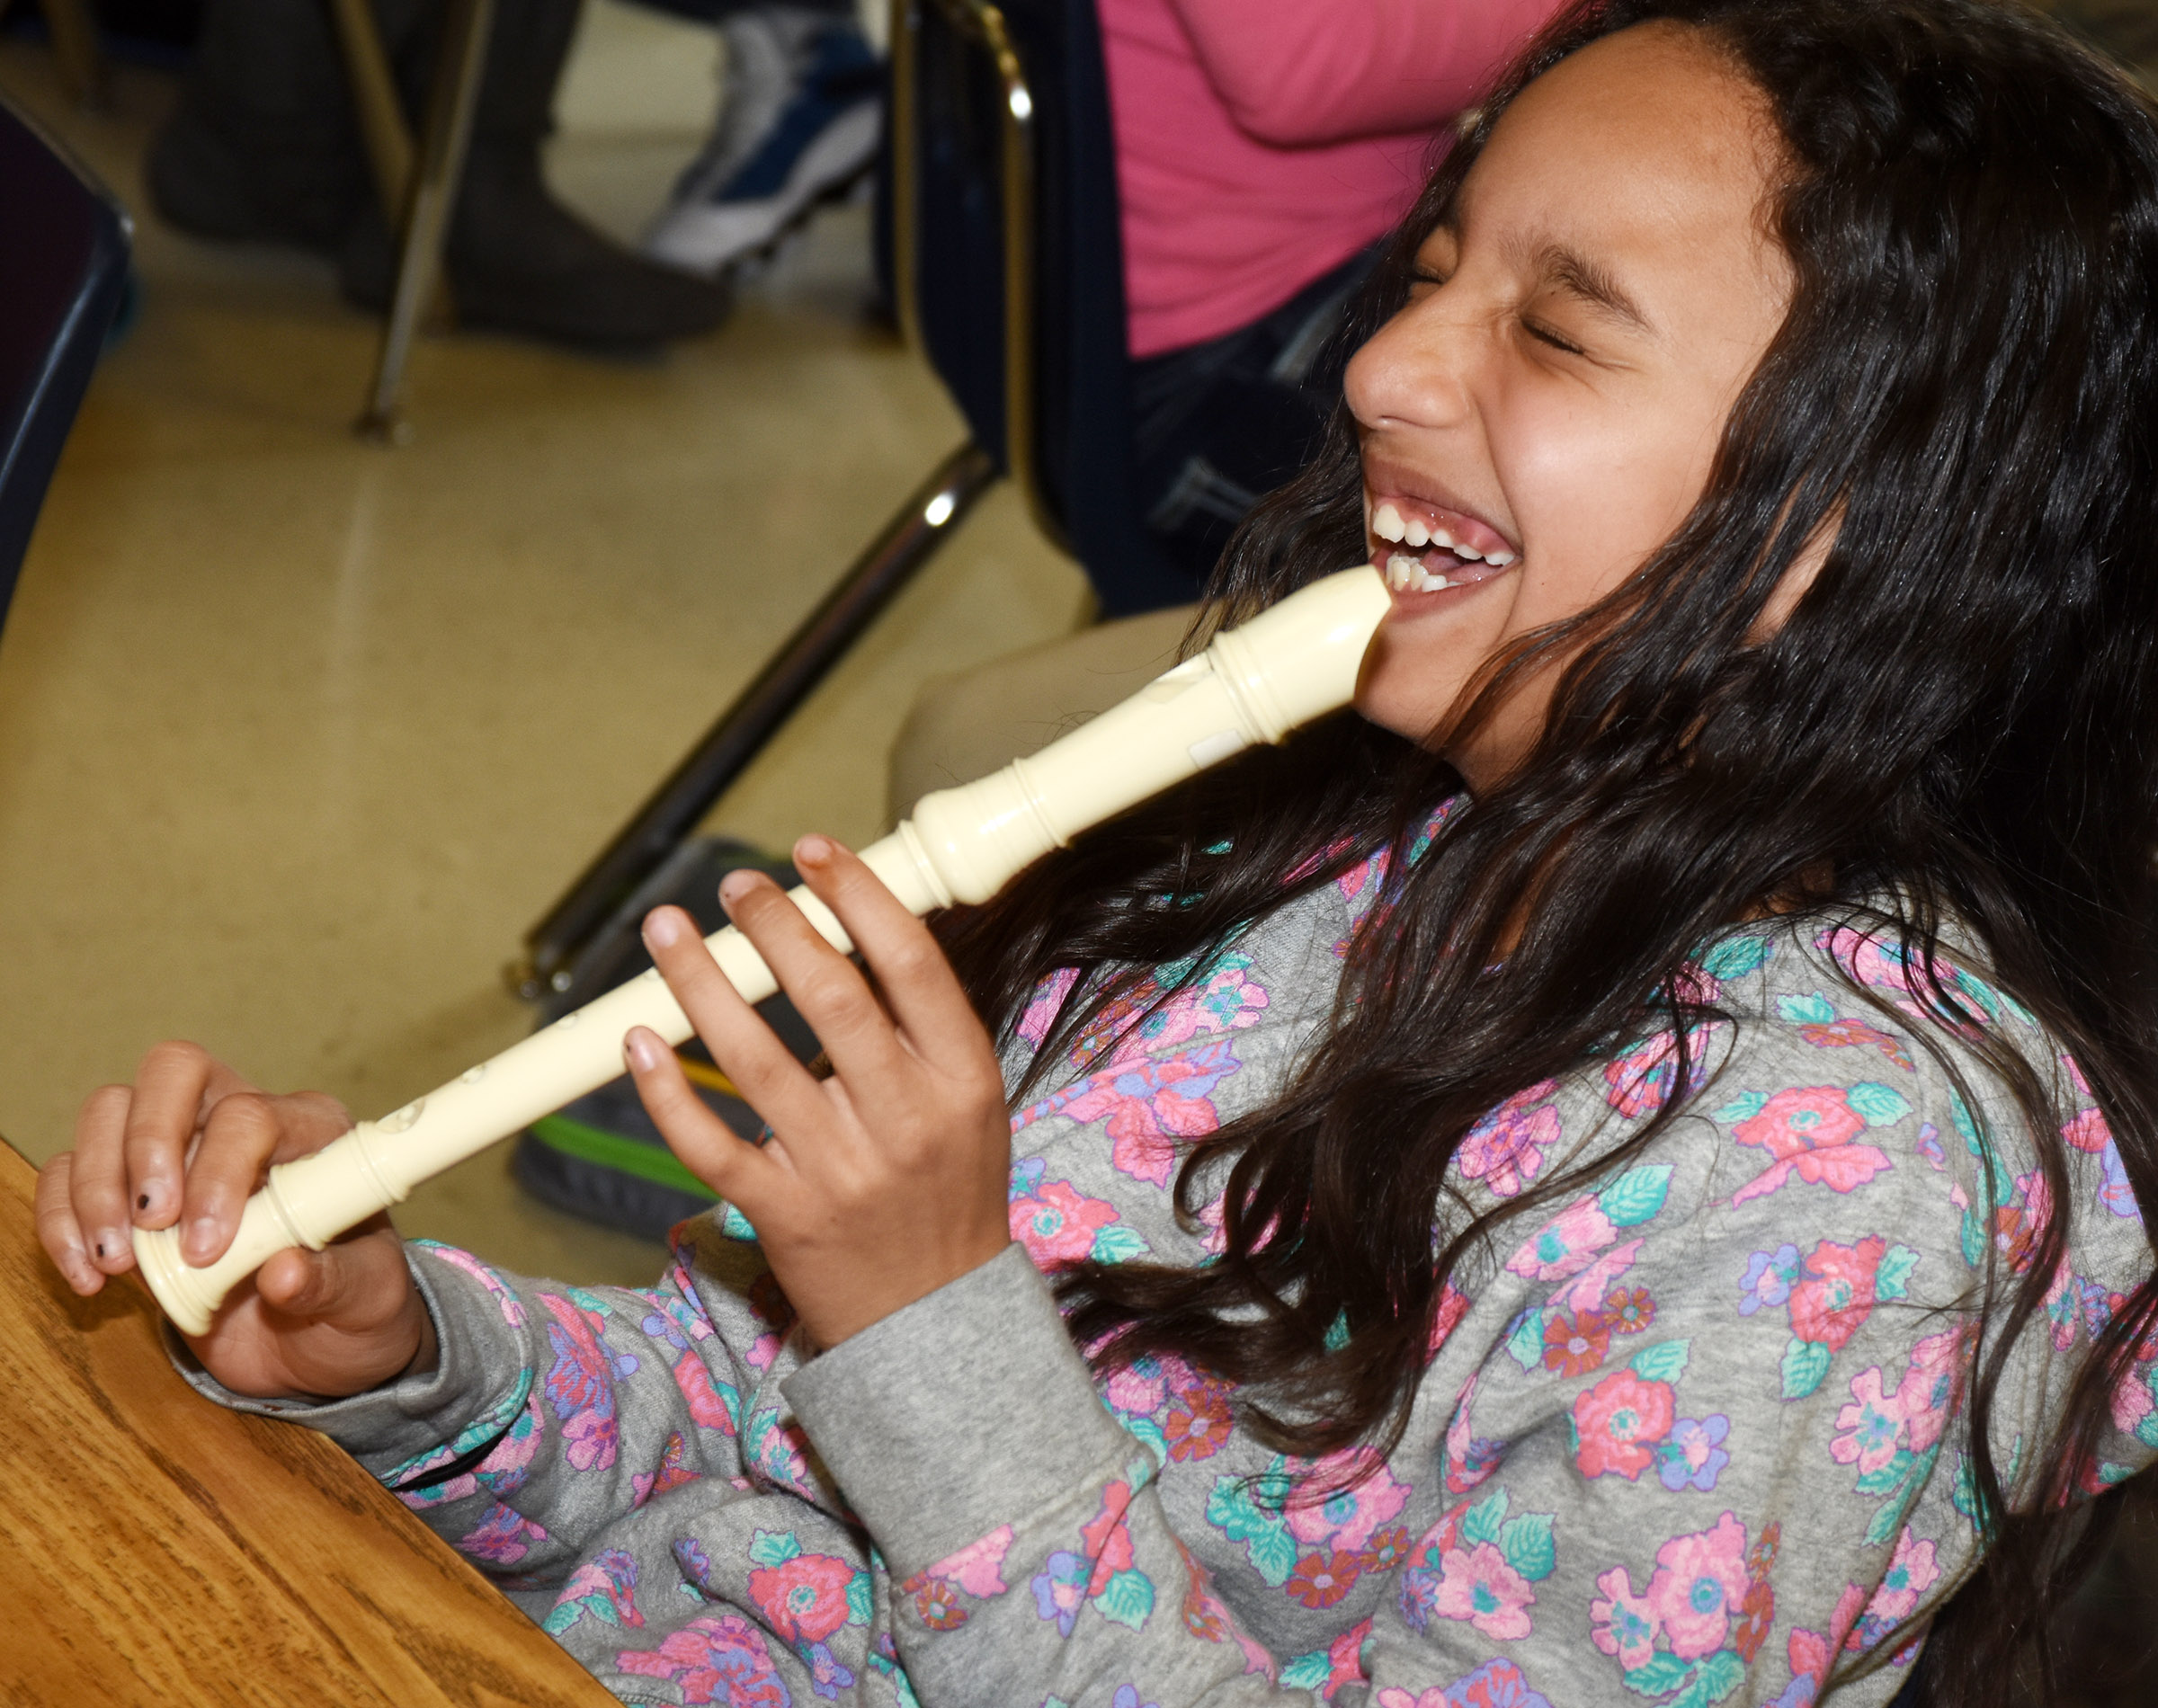 CES fourth-grader Alyssa Knezevic laughs as she plays the recorder.